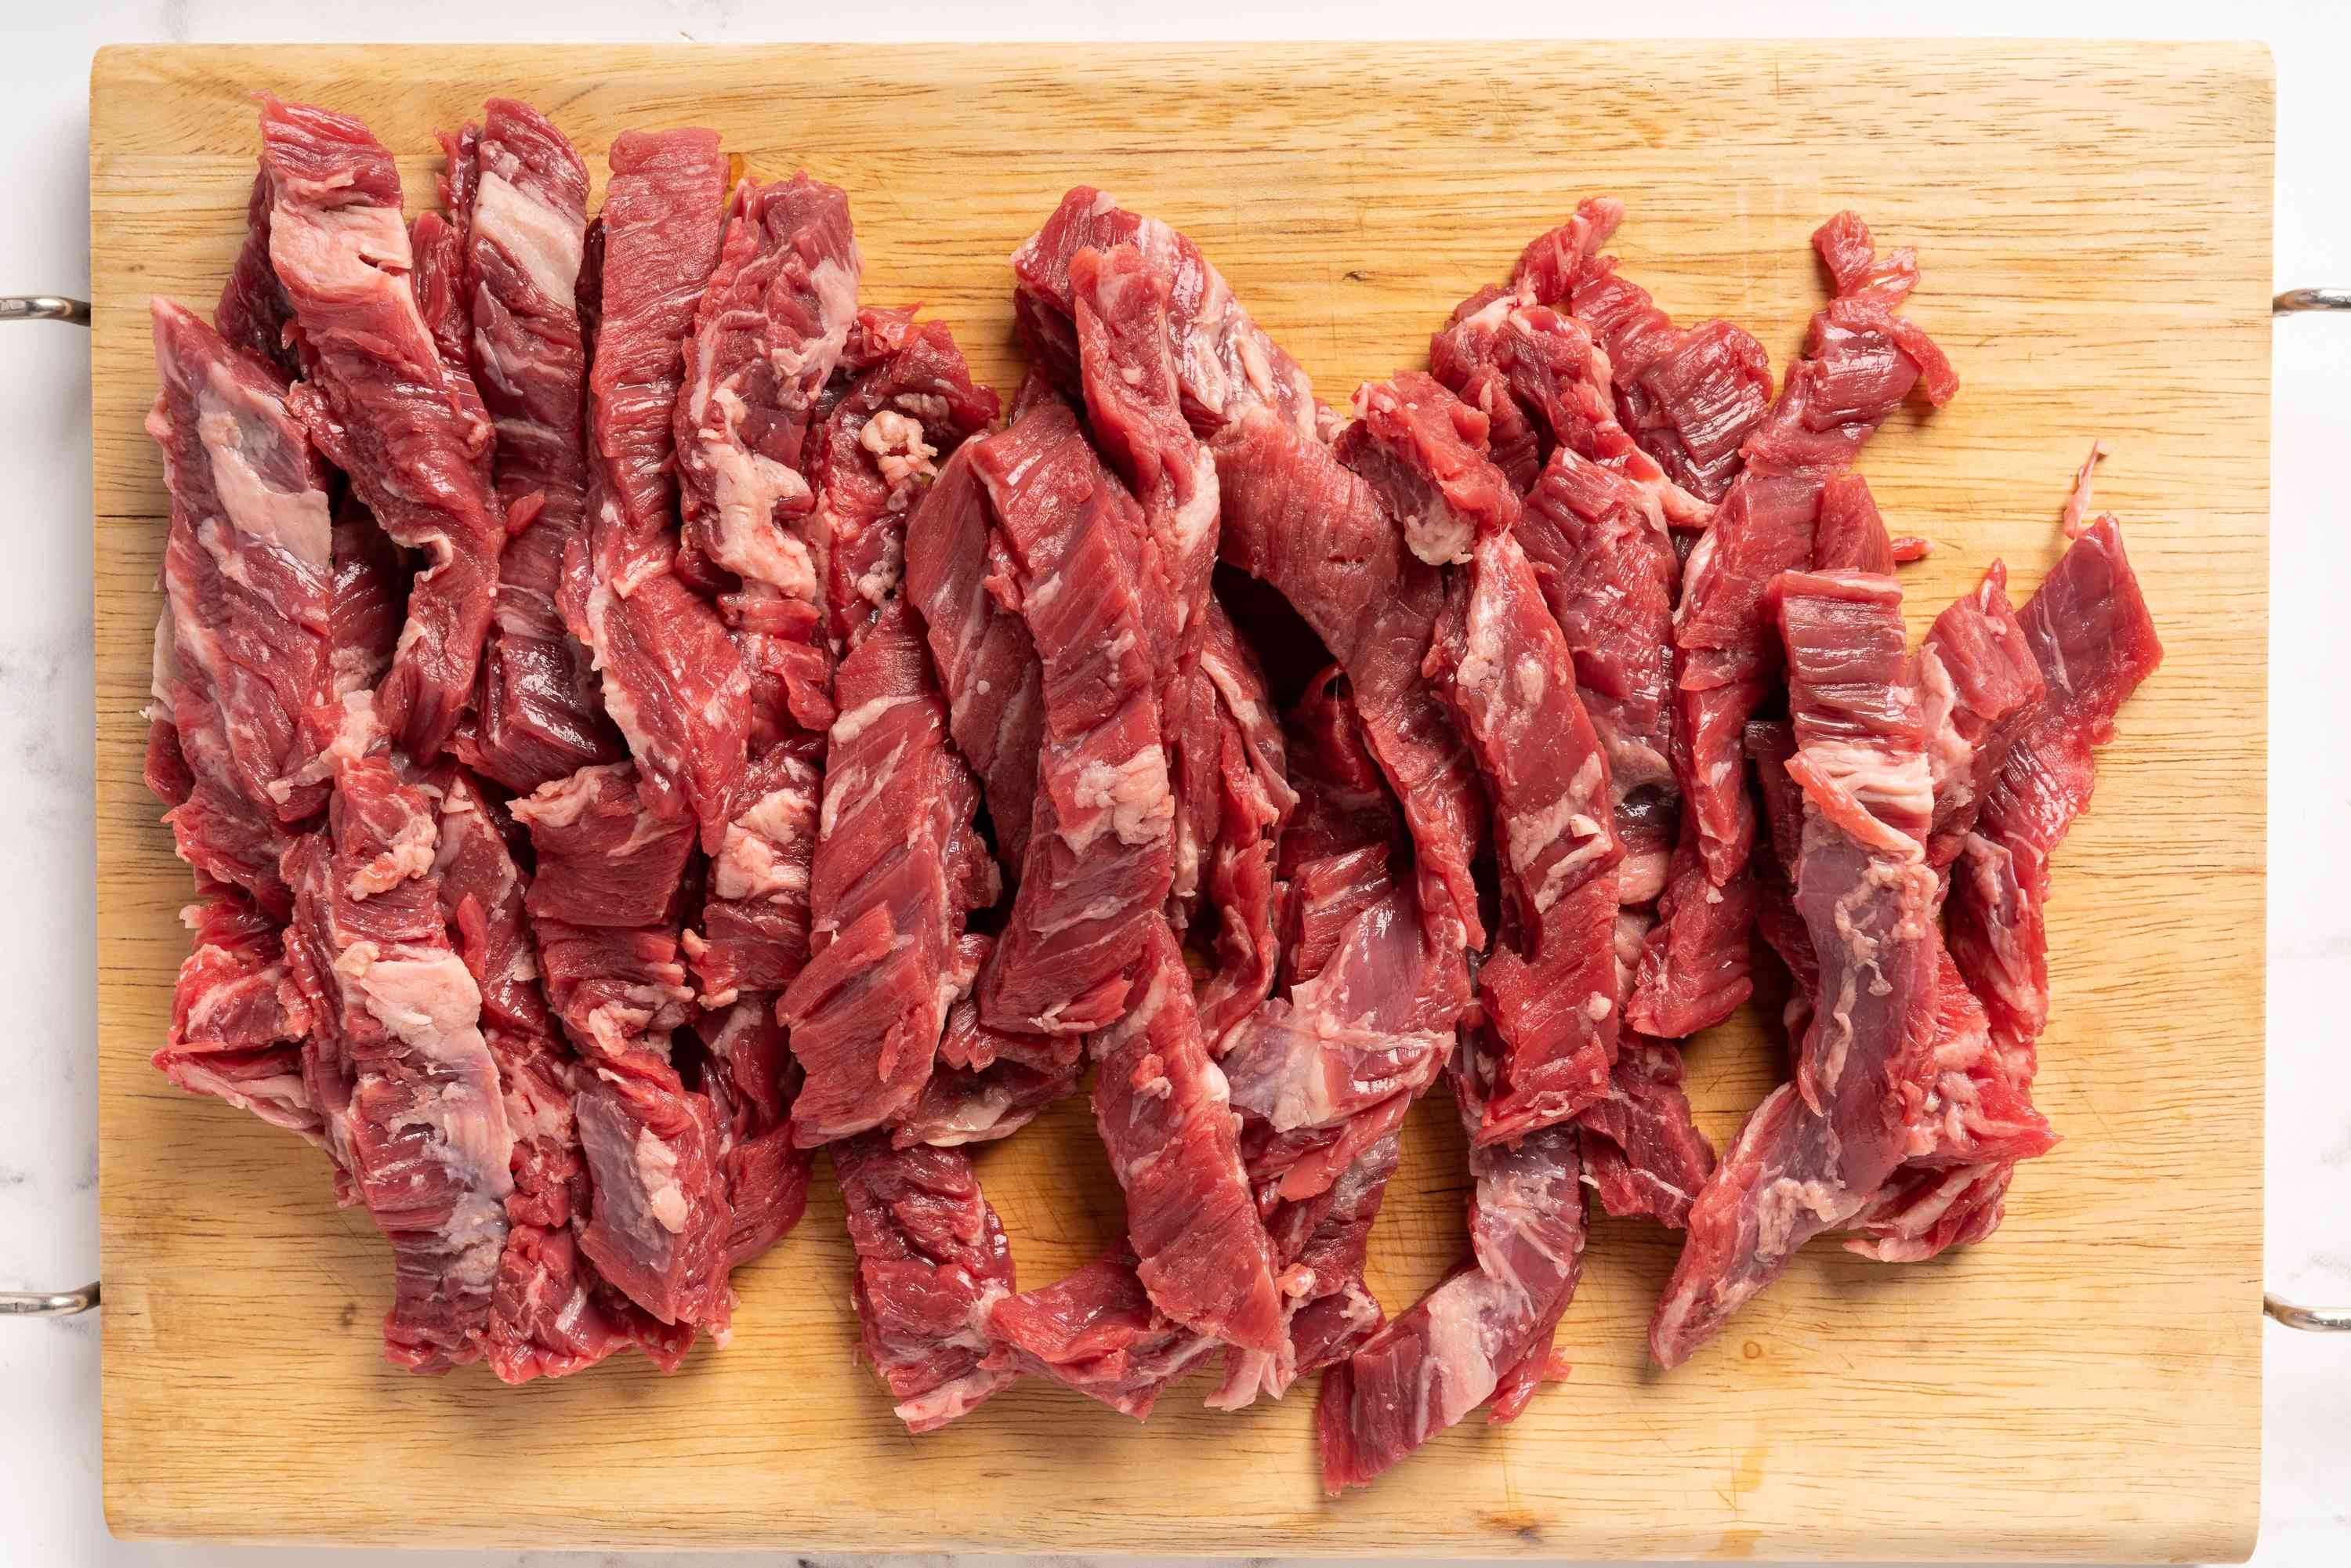 Slice the steak across the grain and into thin strips